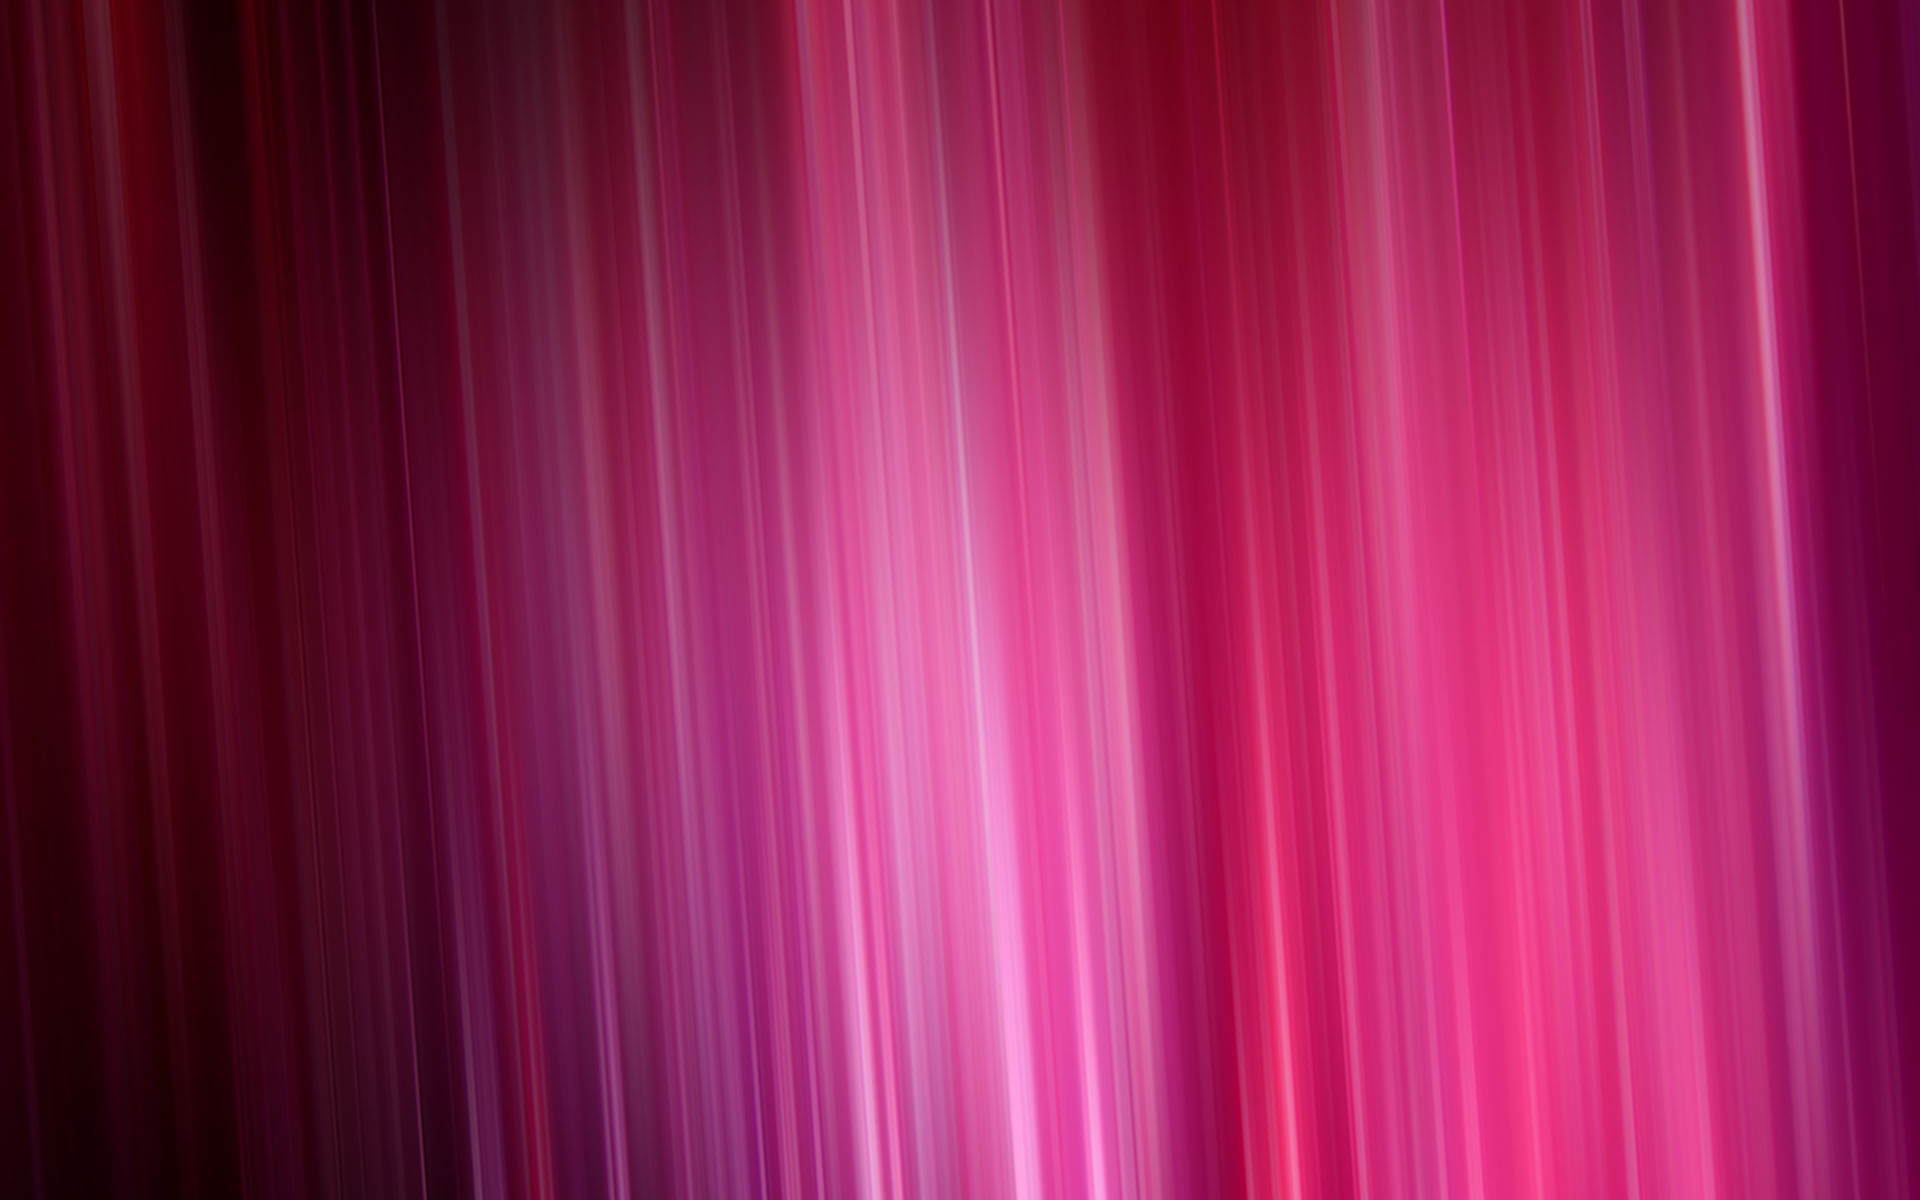 shades of pink - wallpaper, high definition, high quality, widescreen